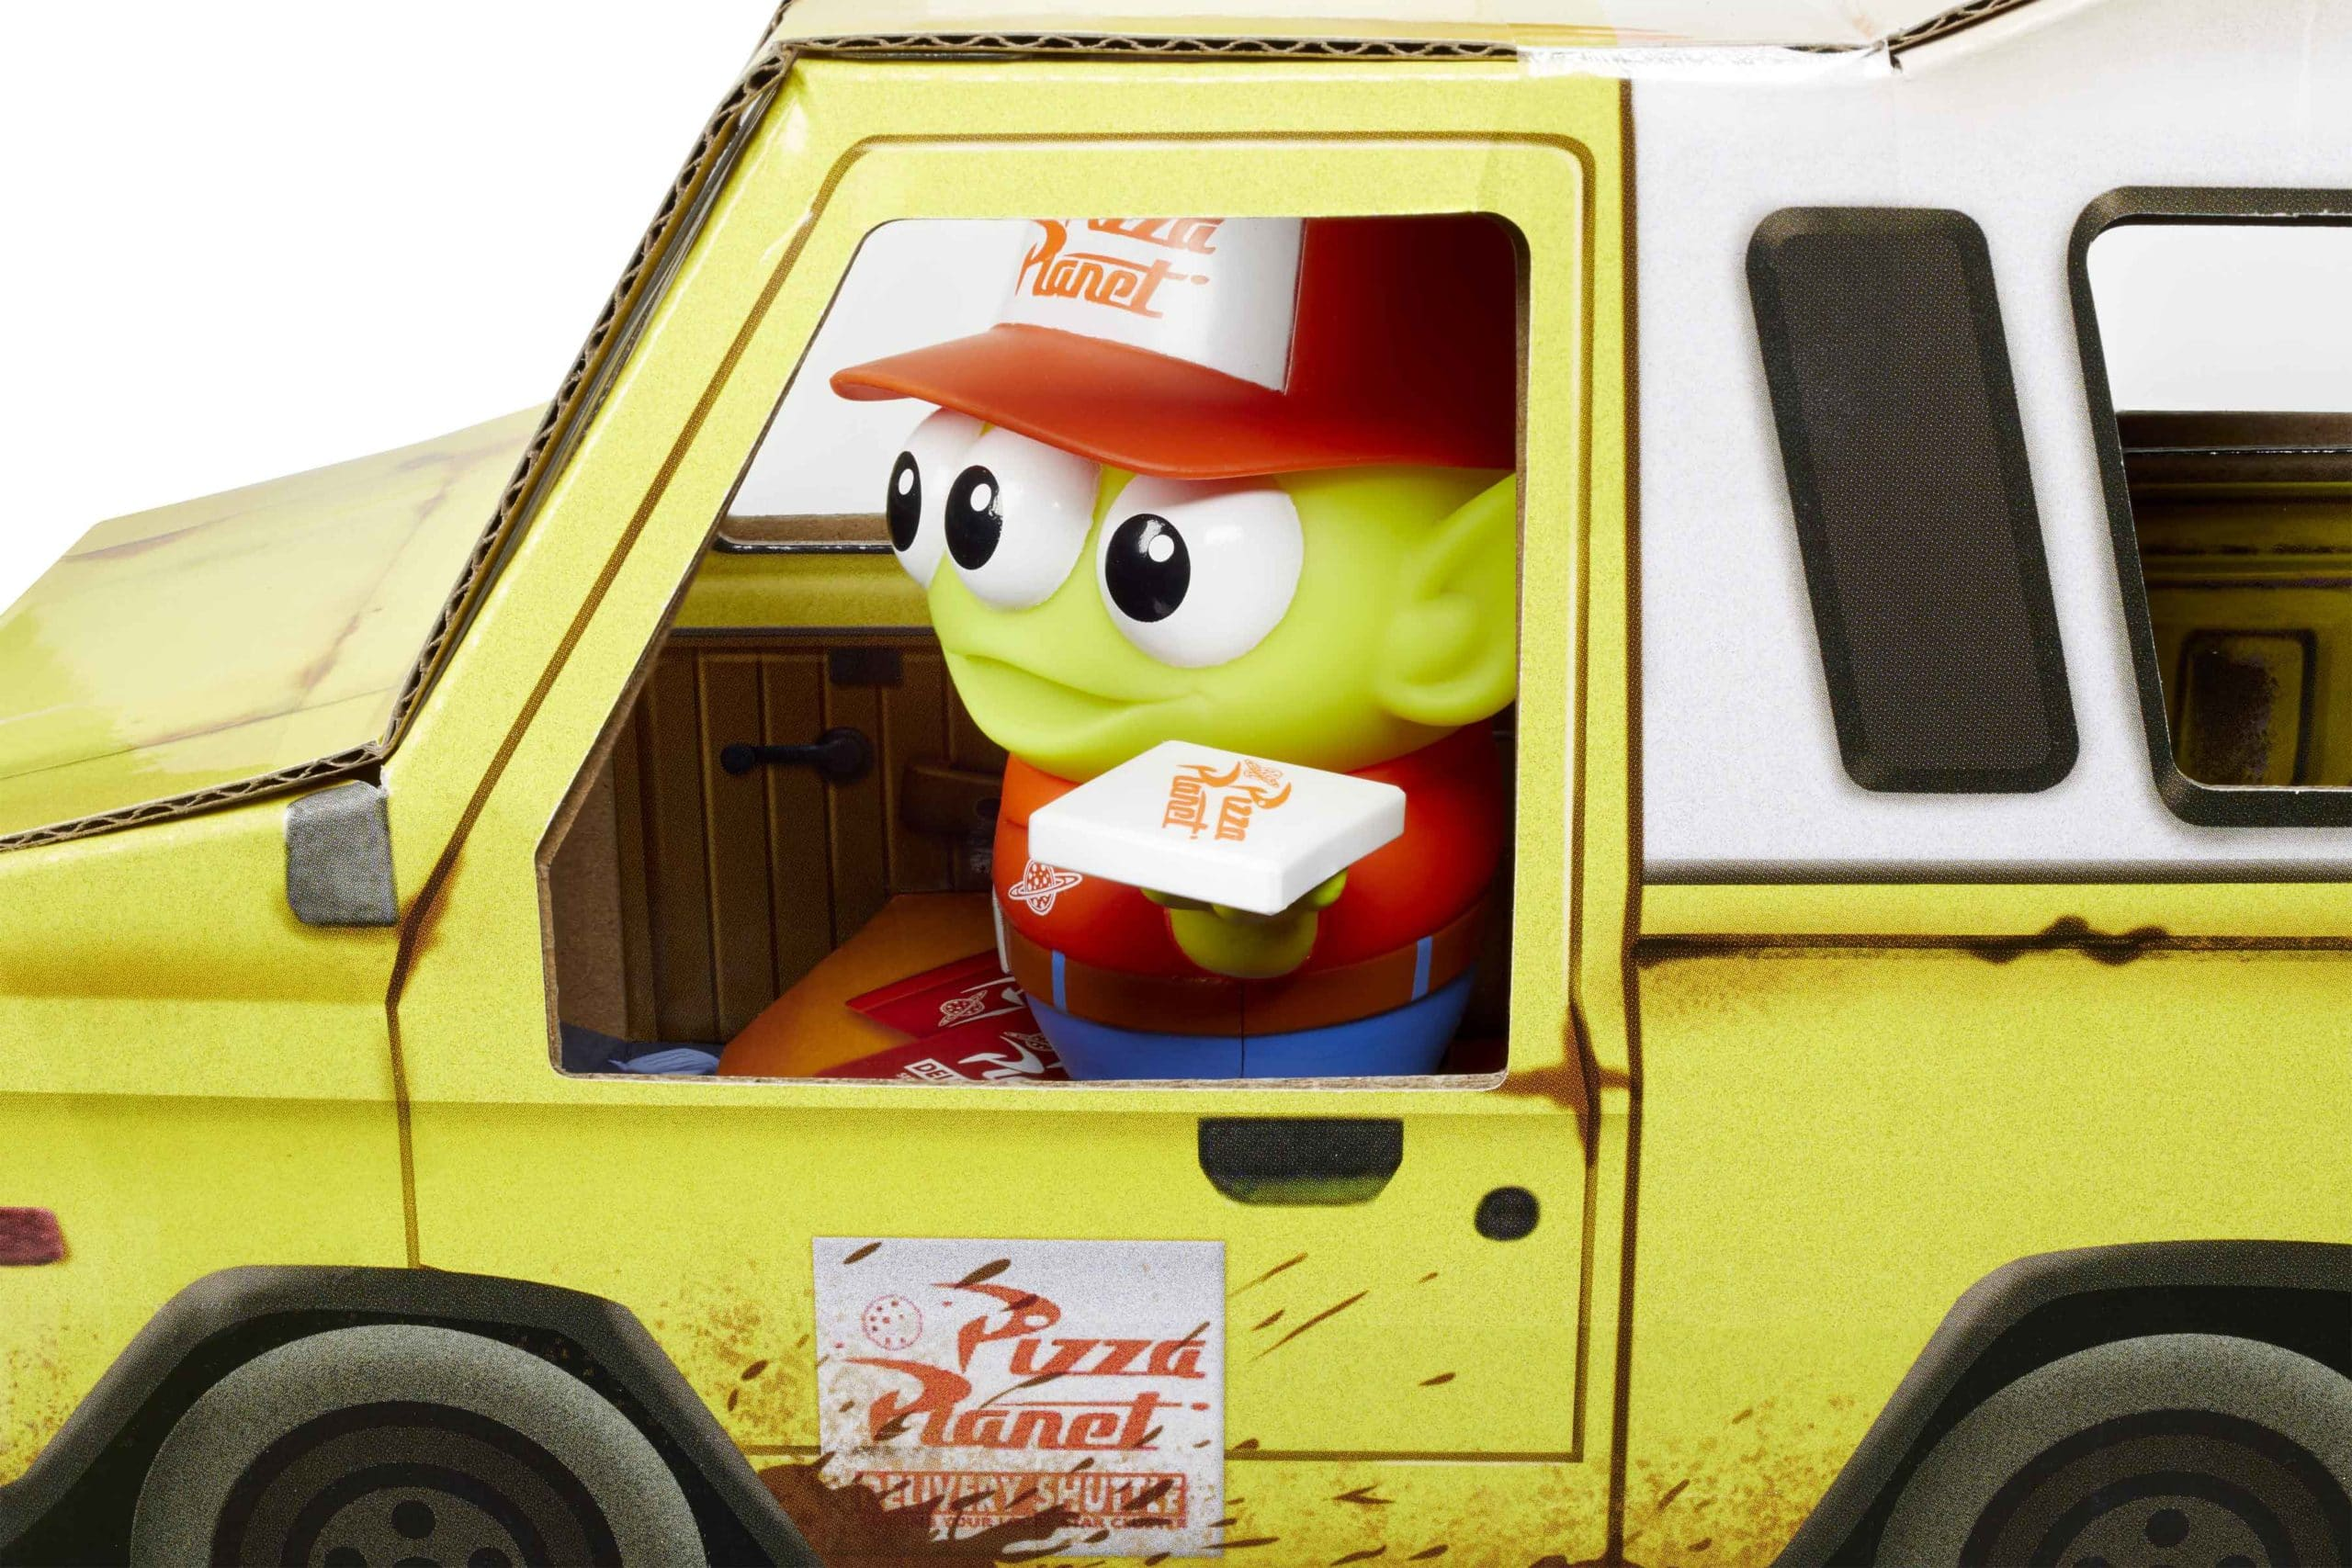 Mattel celebrates Toy Story's 25th anniversary with an Alien Pizza Planet Delivery Guy figure 11